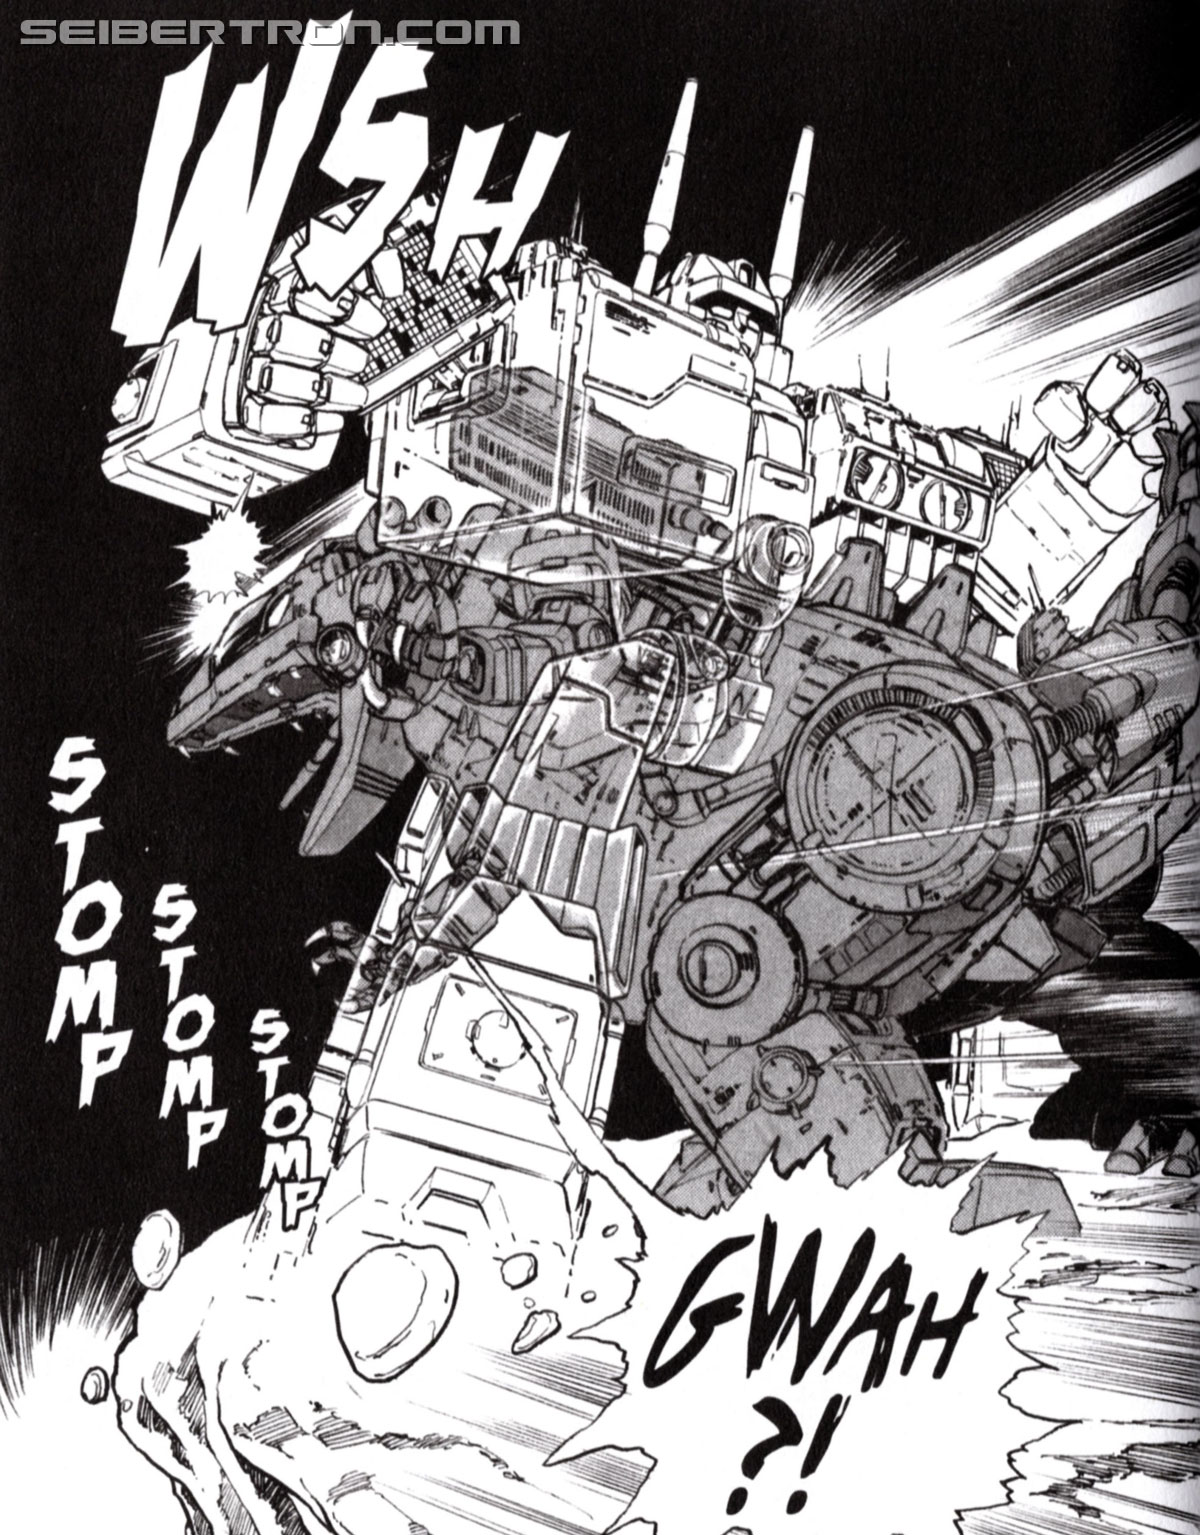 Transformers News: Check out Seibertron's review of Transformers: The Manga Volume 1 from Viz Media